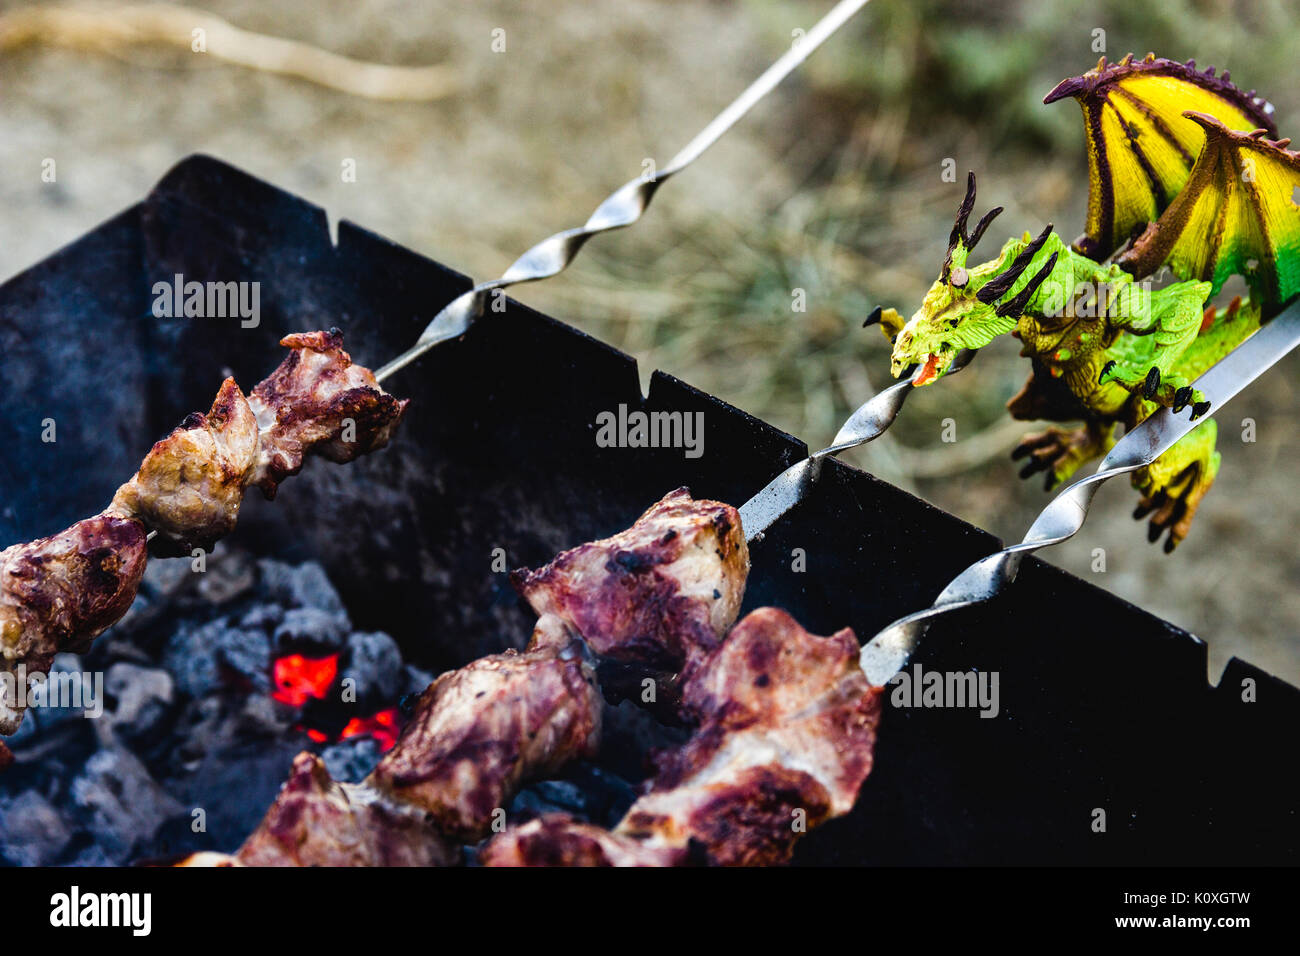 green dragon is cook roasted meat - Stock Image